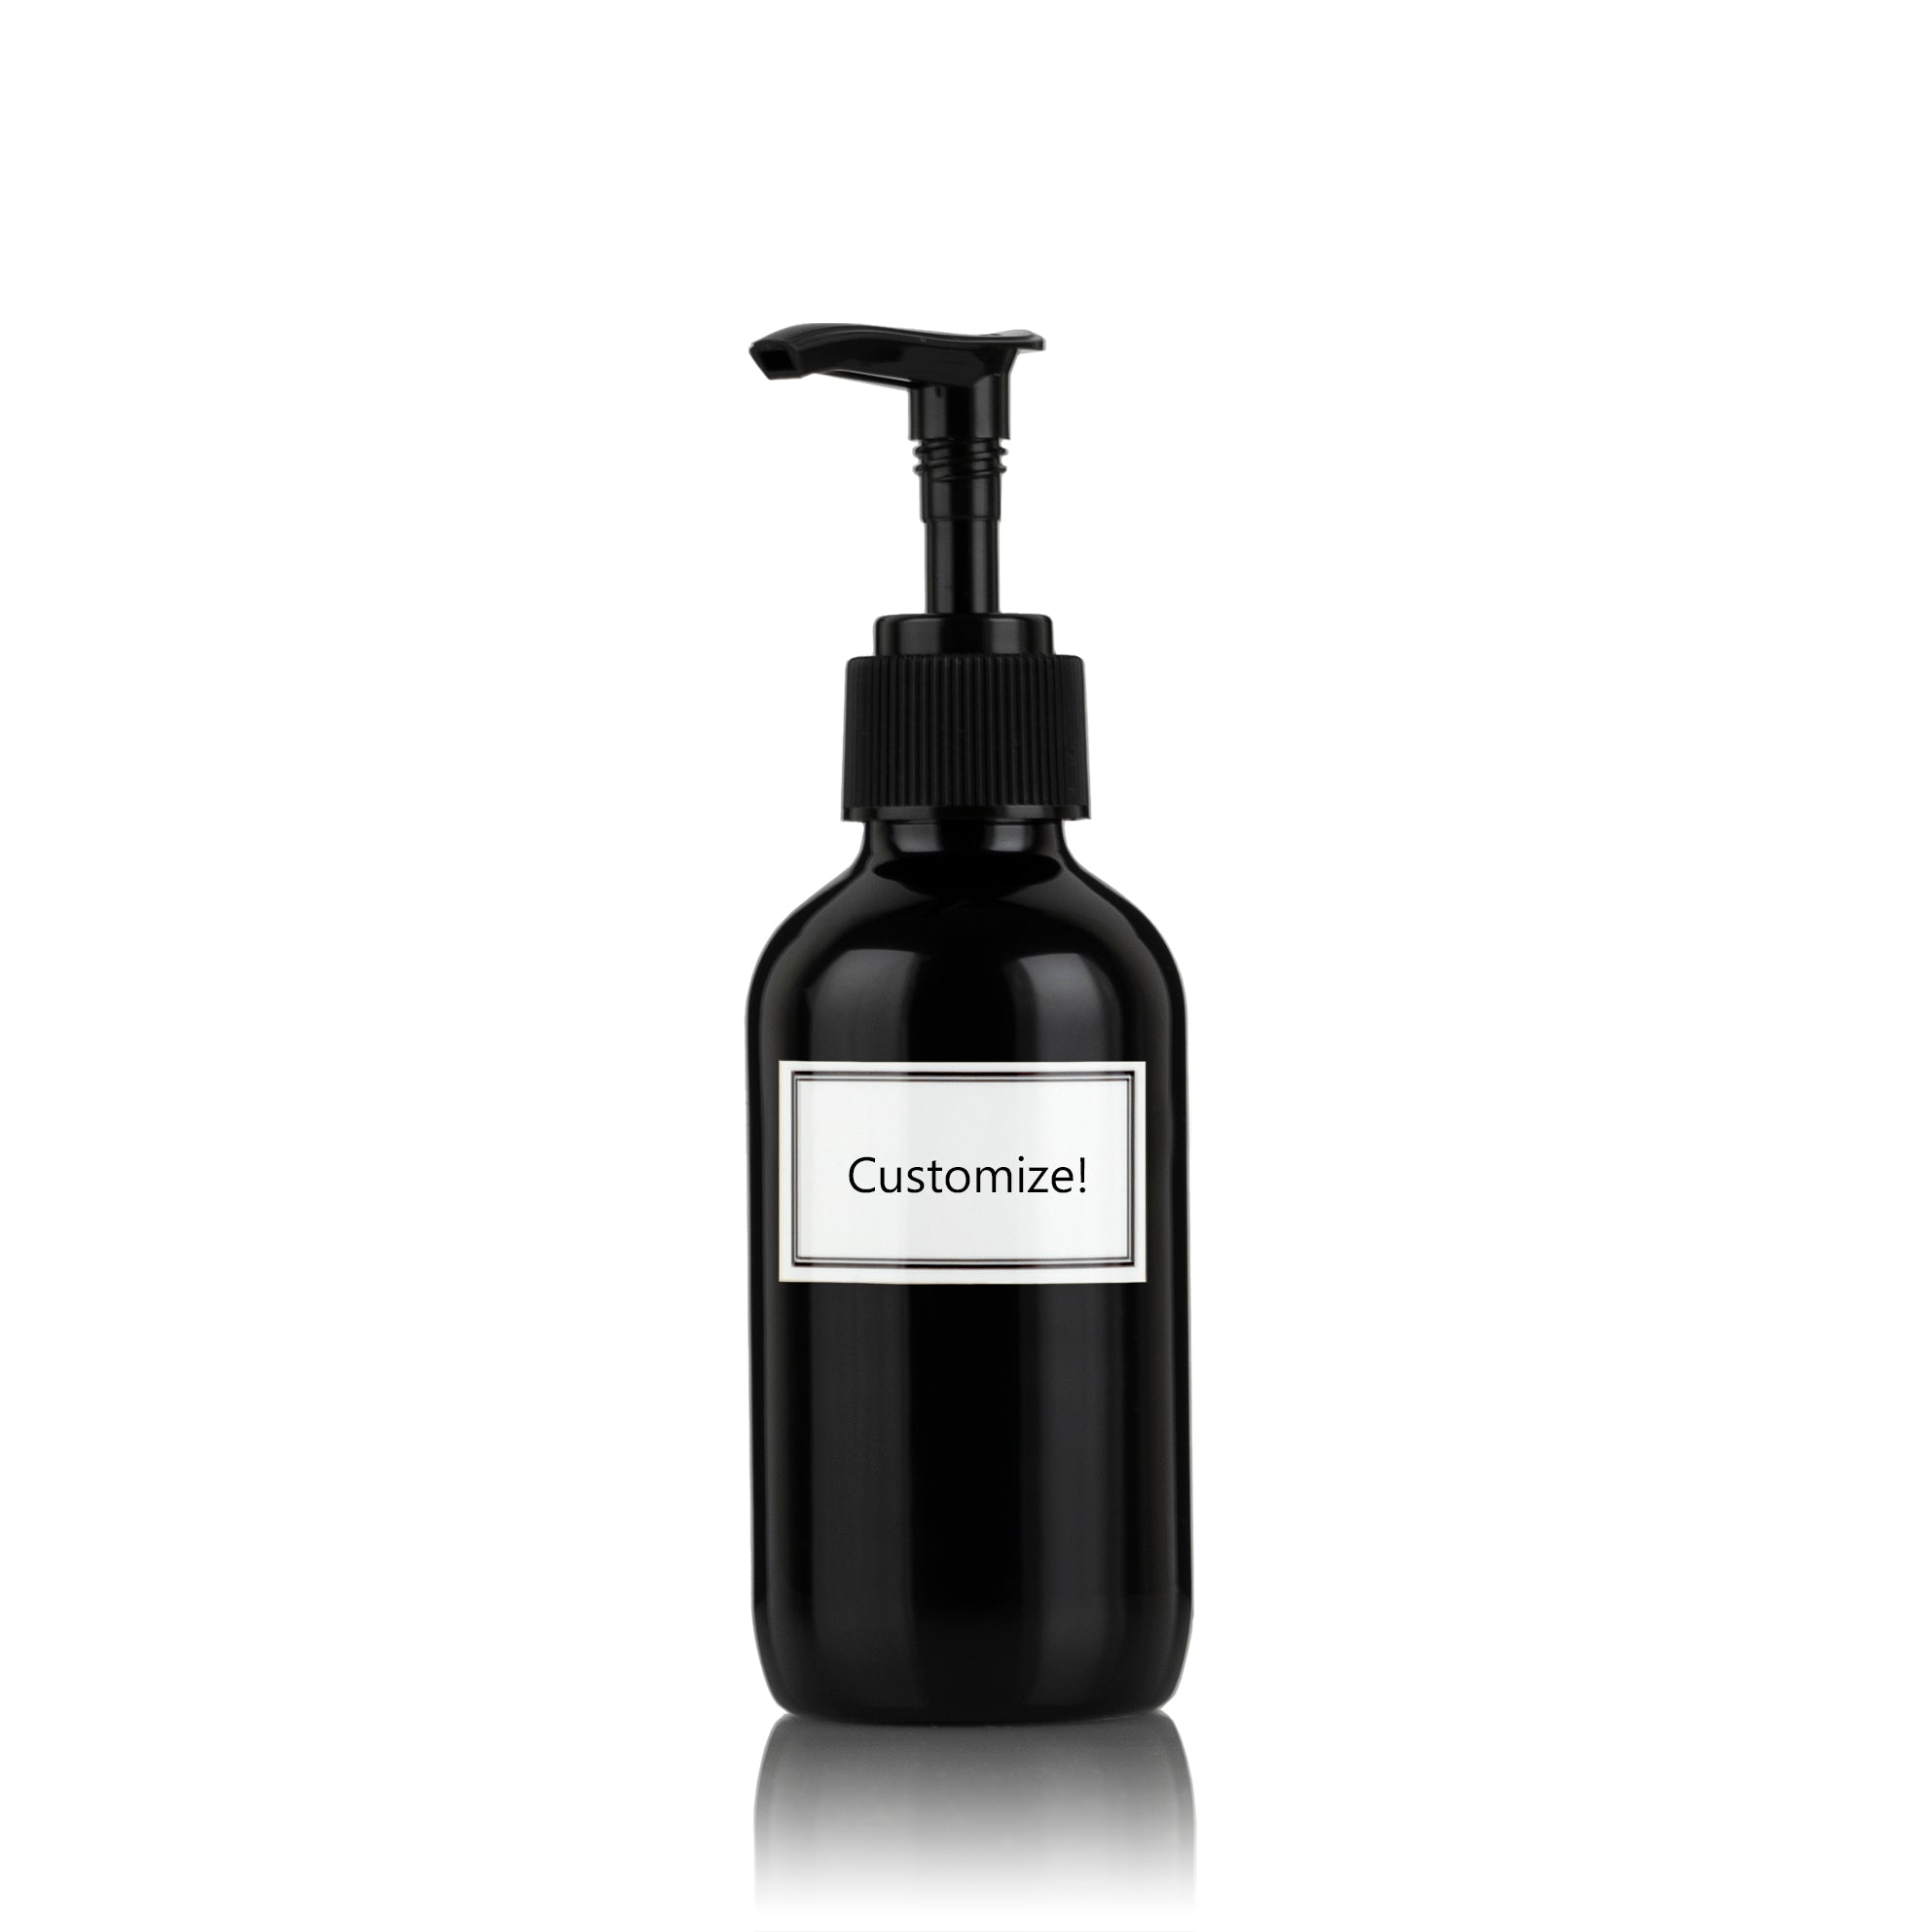 Pure Gloss Black Powder Coated Glass Small 4 oz Pump Bottle